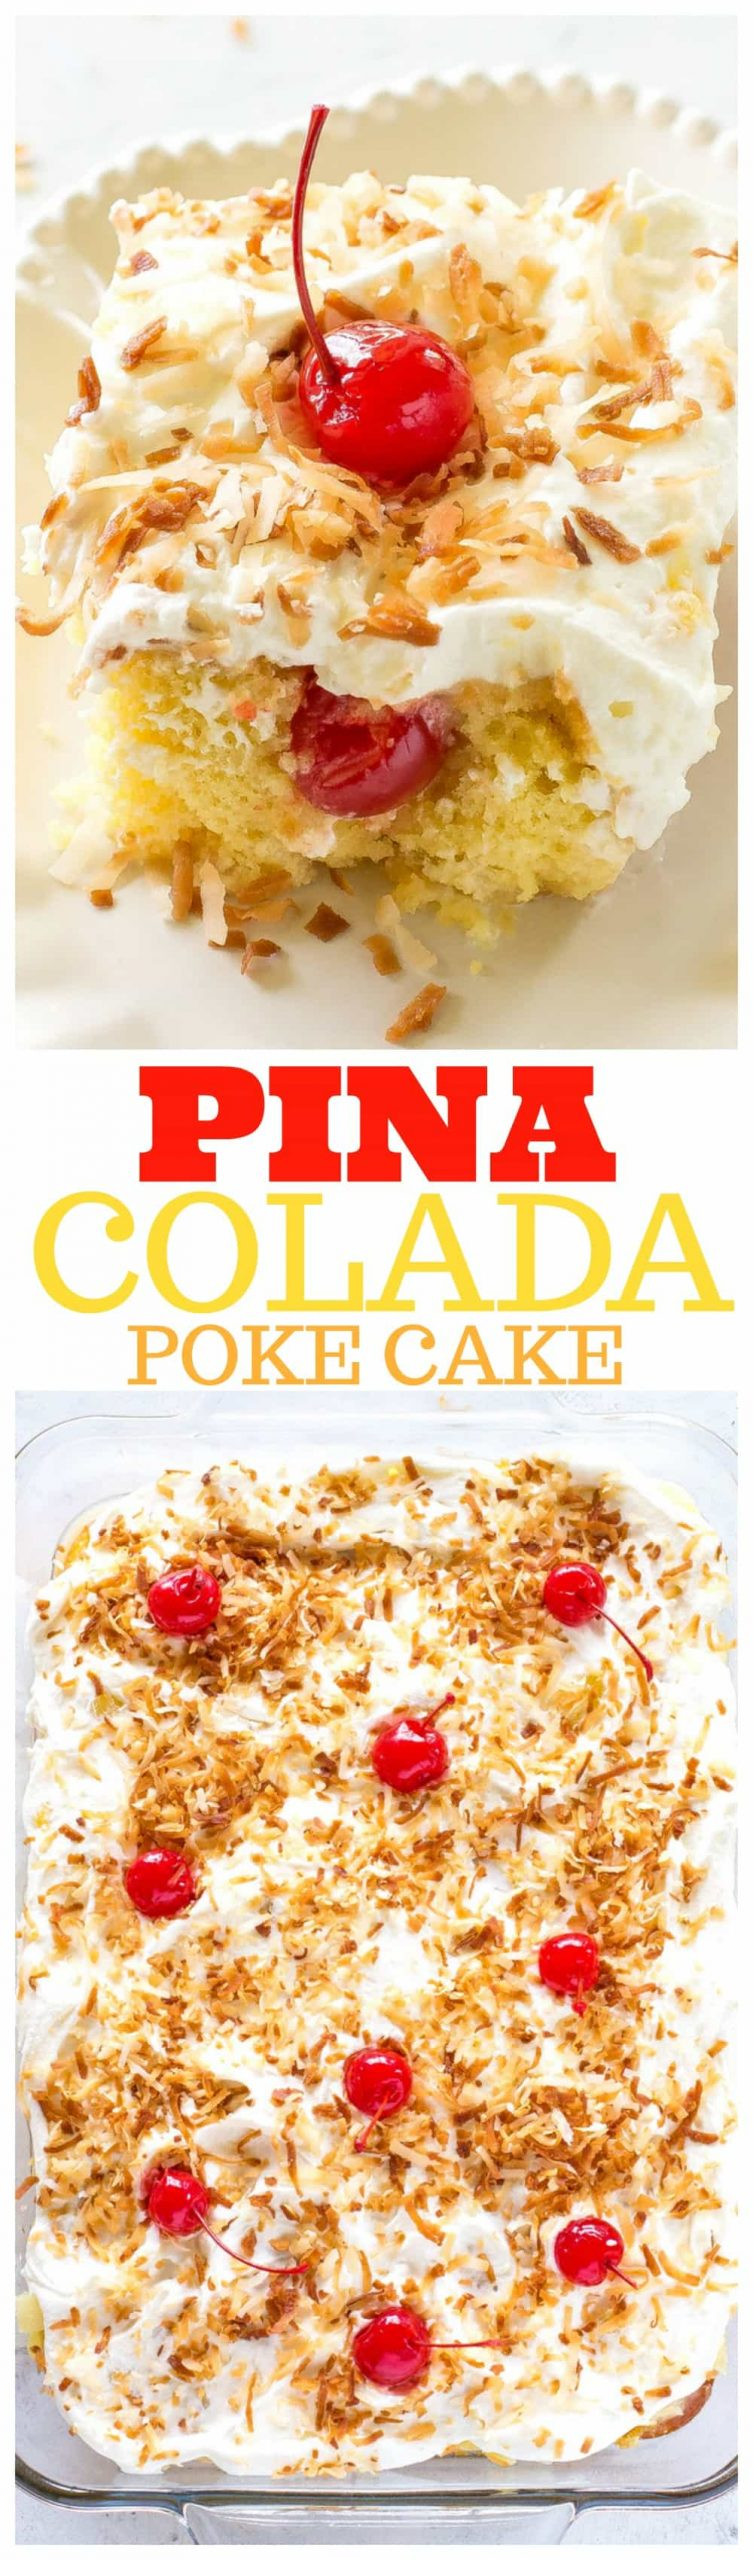 Pina Colada Poke Cake - drizzled with coconut and pineapple and topped with coconut whipped cream and toasted coconut, this cake is the best summer cake out there. #pina #colada #poke #cake #dessert #recipe